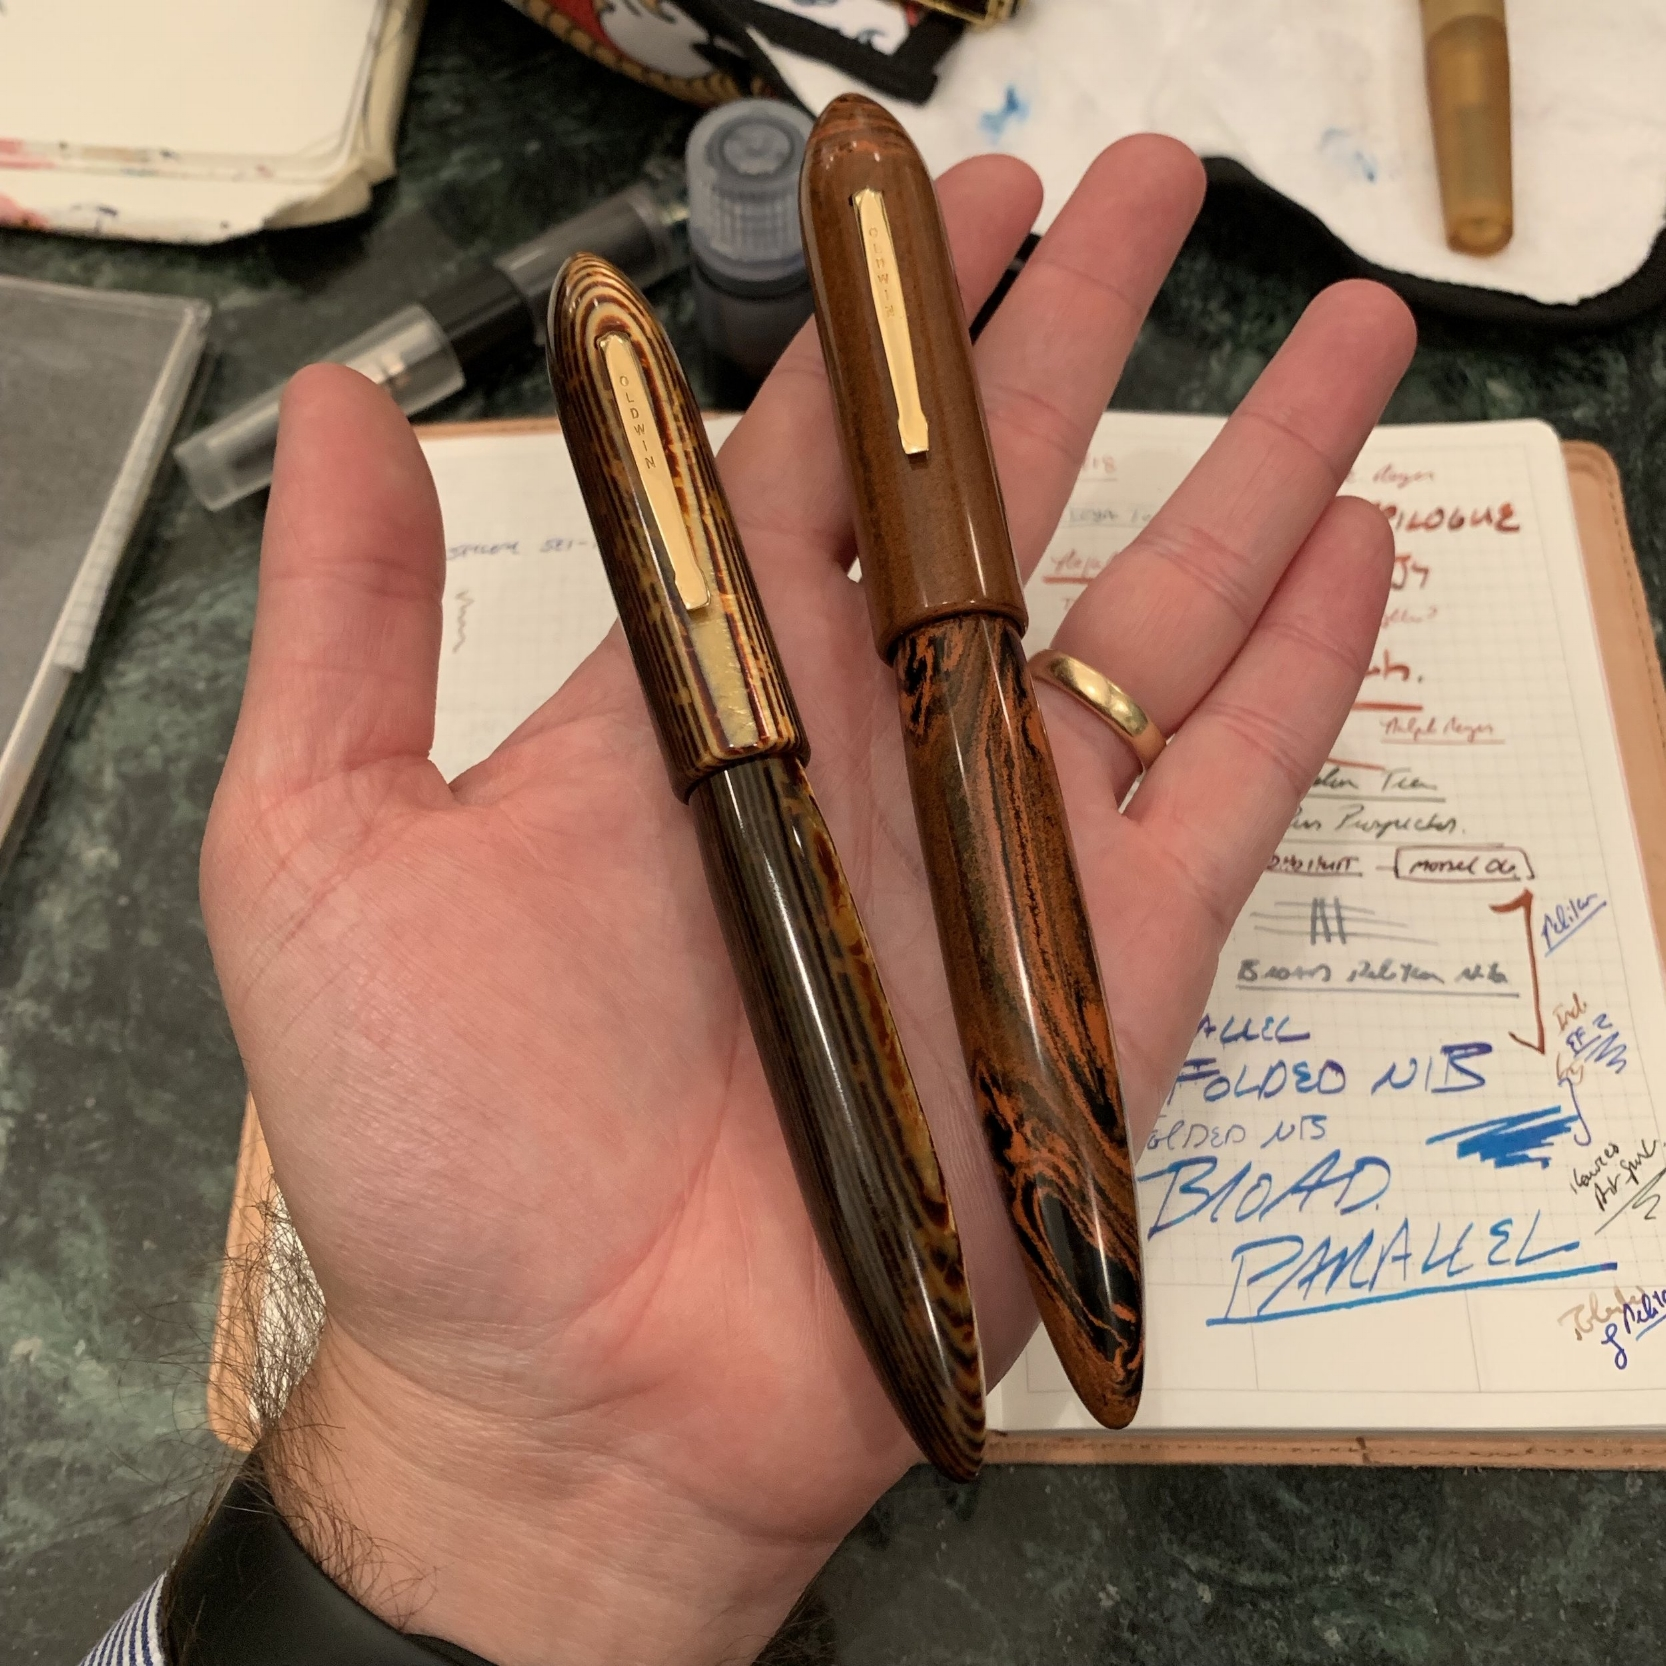 A pair of Oldwin pens in Ebonite and Arco celluloid.